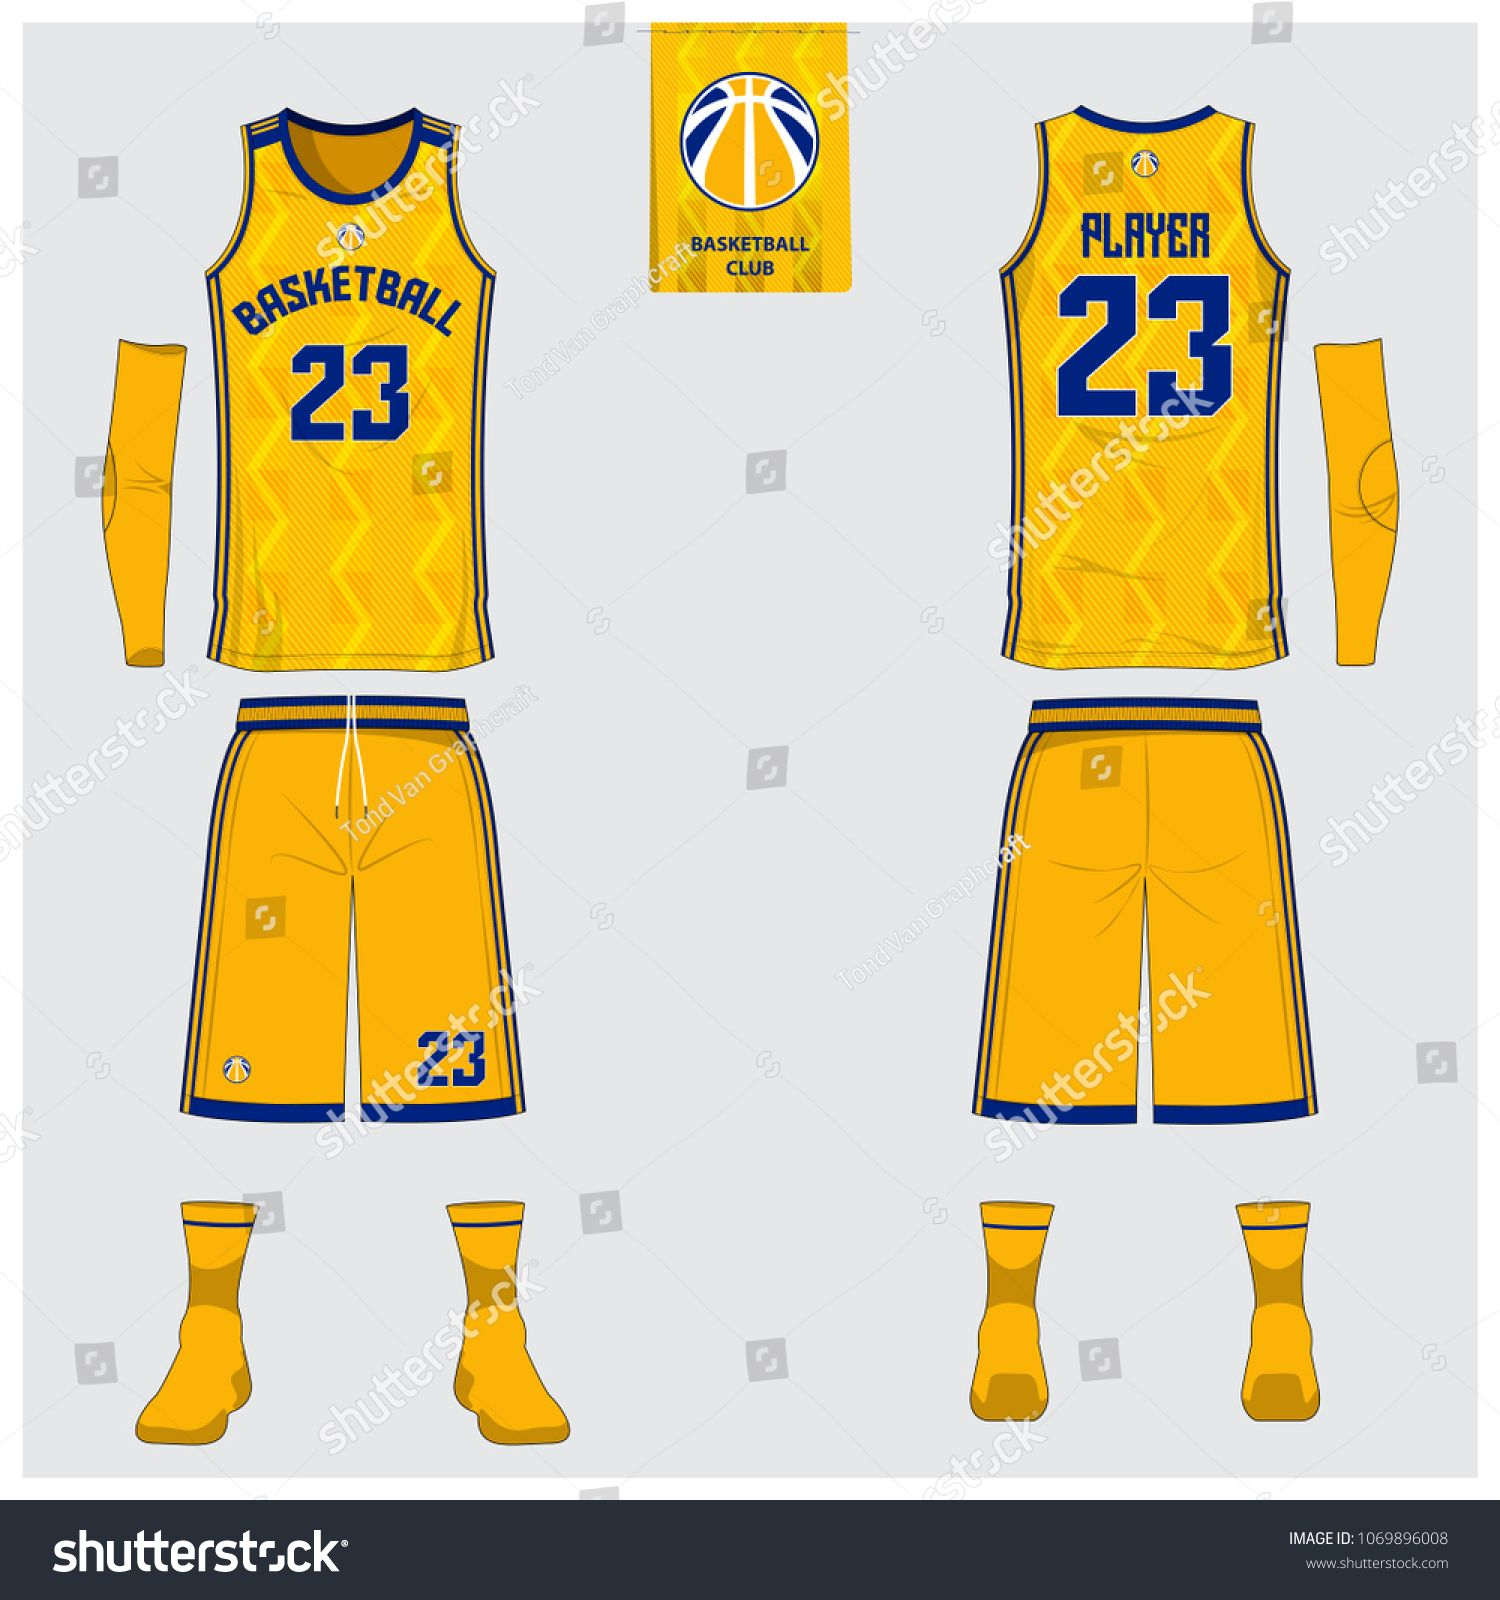 Yellow Basketball Jersey Or Sport Uniform Template Design For Basketball Club Front And Back View Sport T Shirt Desi Sports Uniforms Jersey Design Balls Shirt